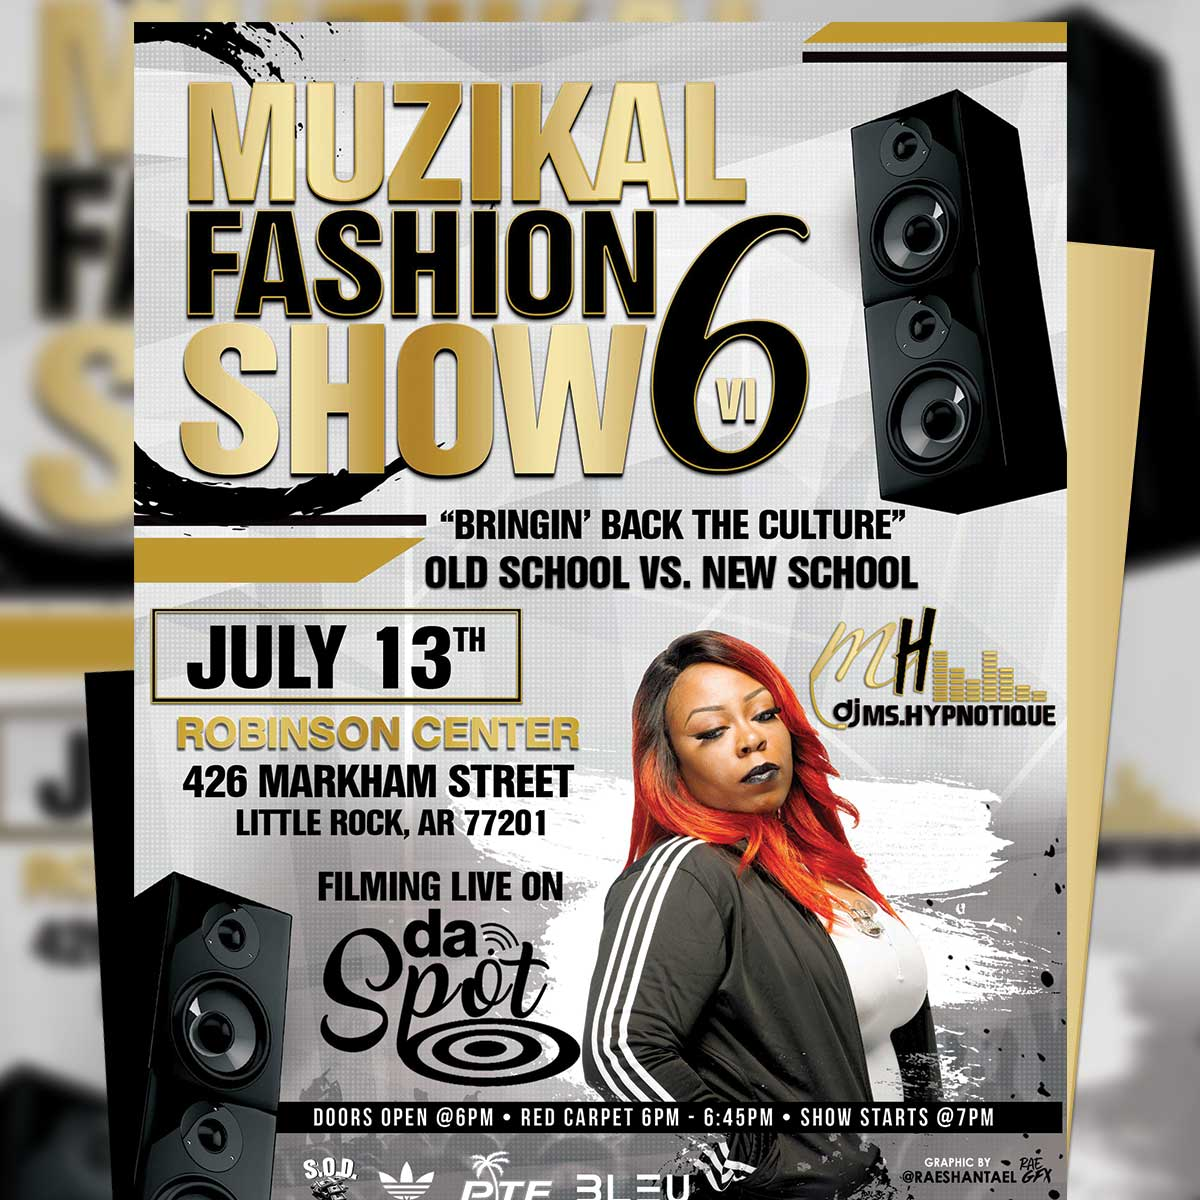 [Event] 7/13 Muzikal Fashion Show 6 in Little Rock